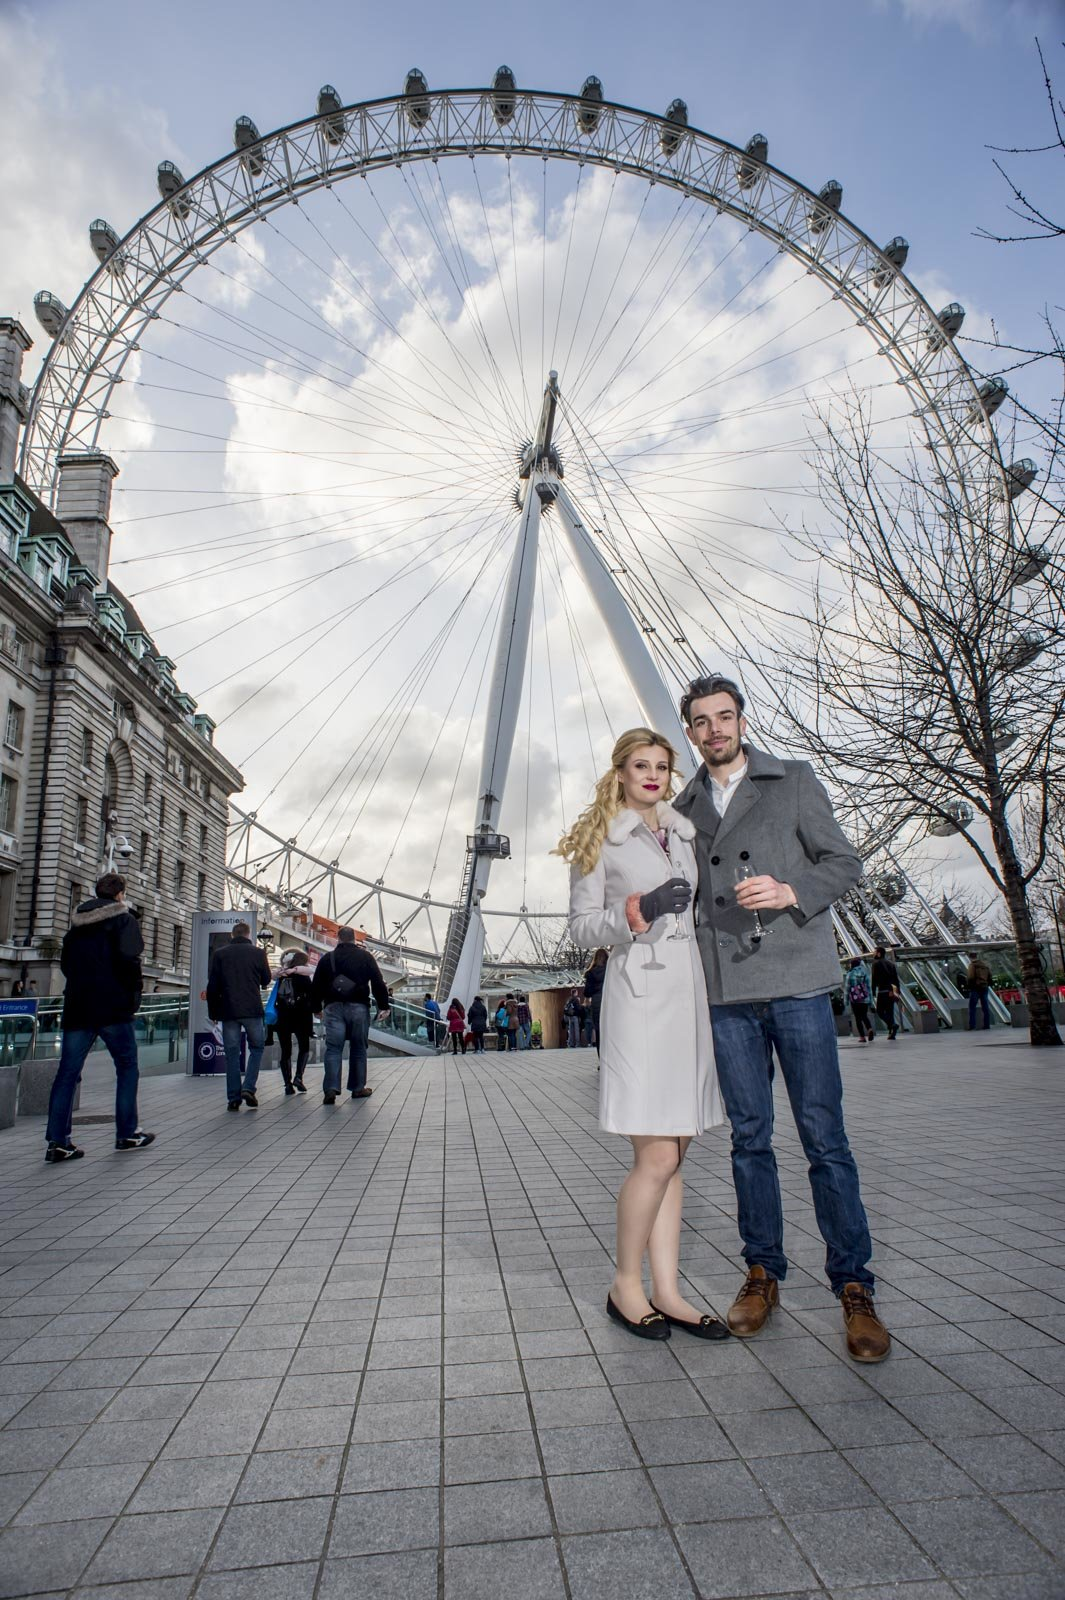 Andy and Lauren proposal with wheel